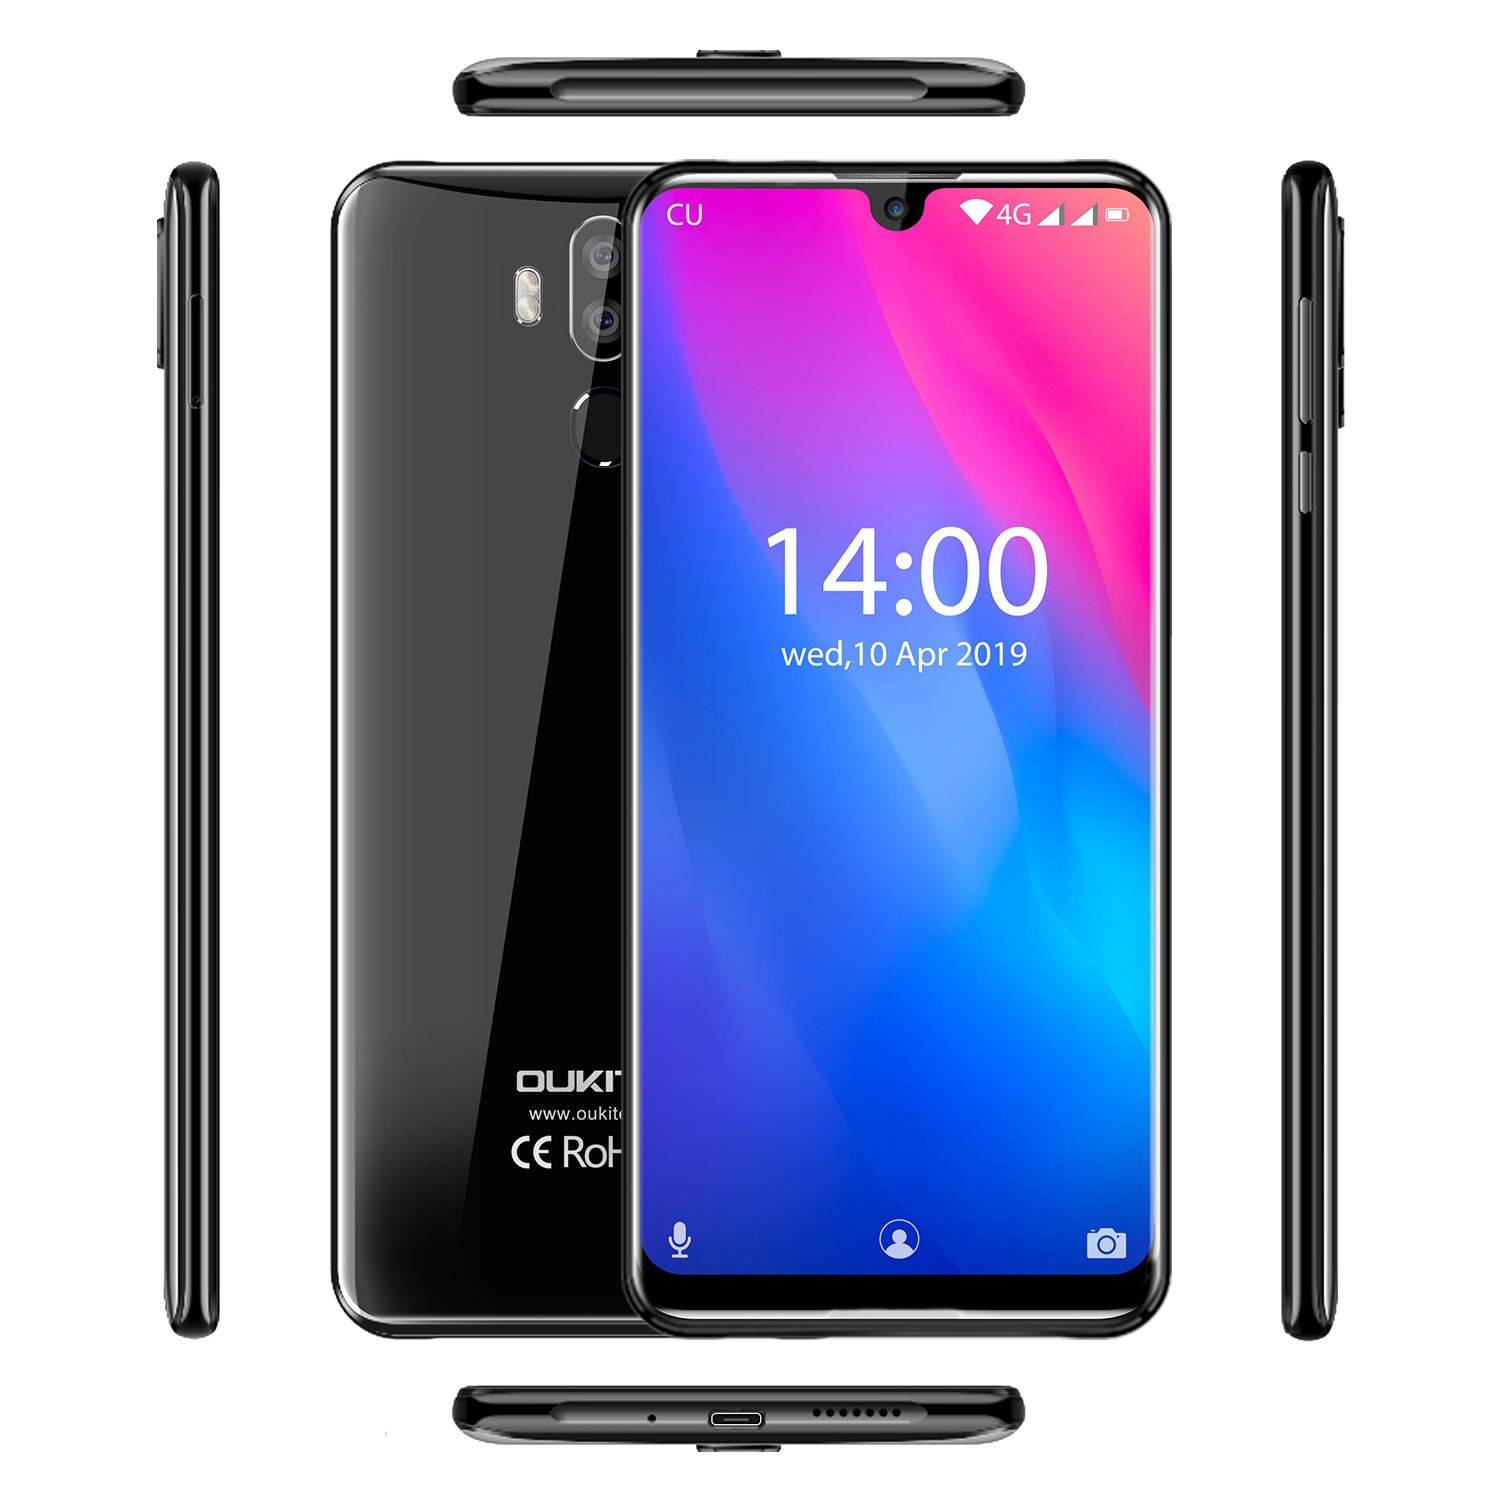 HOMTOM 4GB + 64 P30 PRO Telefone Quente 6.41 GB HD + polegadas 1560*720 Android 9.0 OS mobile smartphone 4G